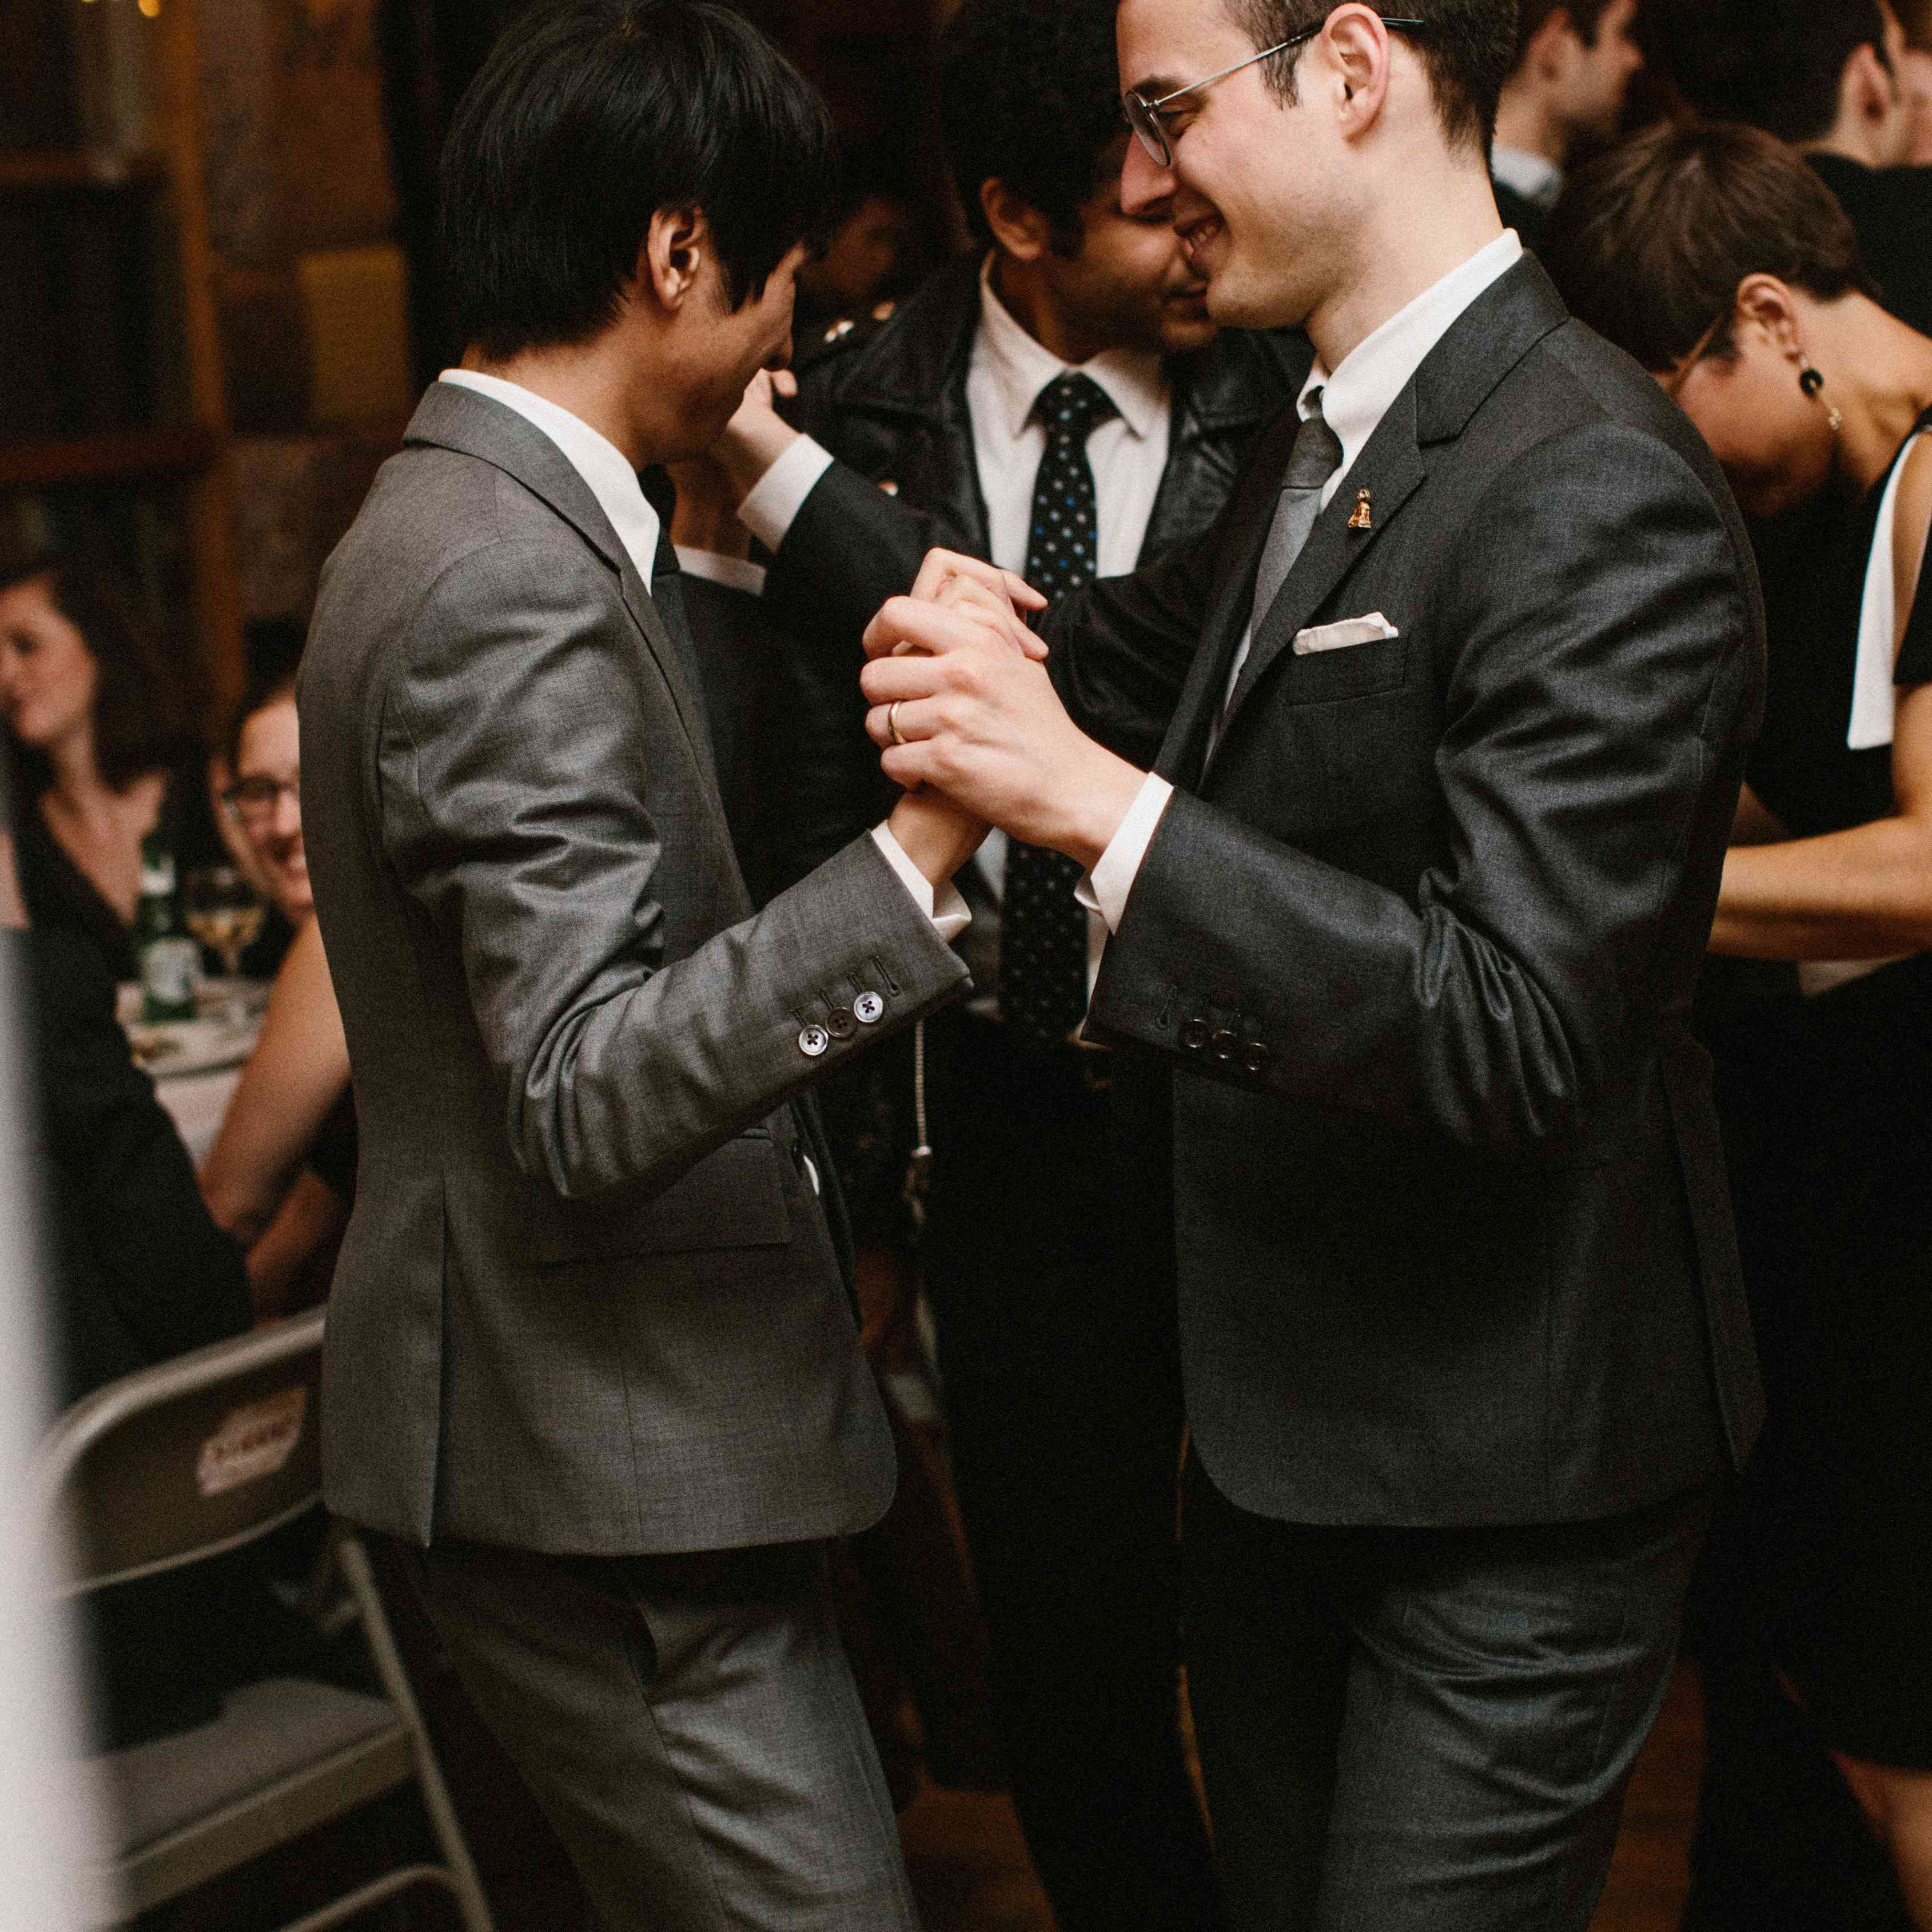 Grooms during first dance